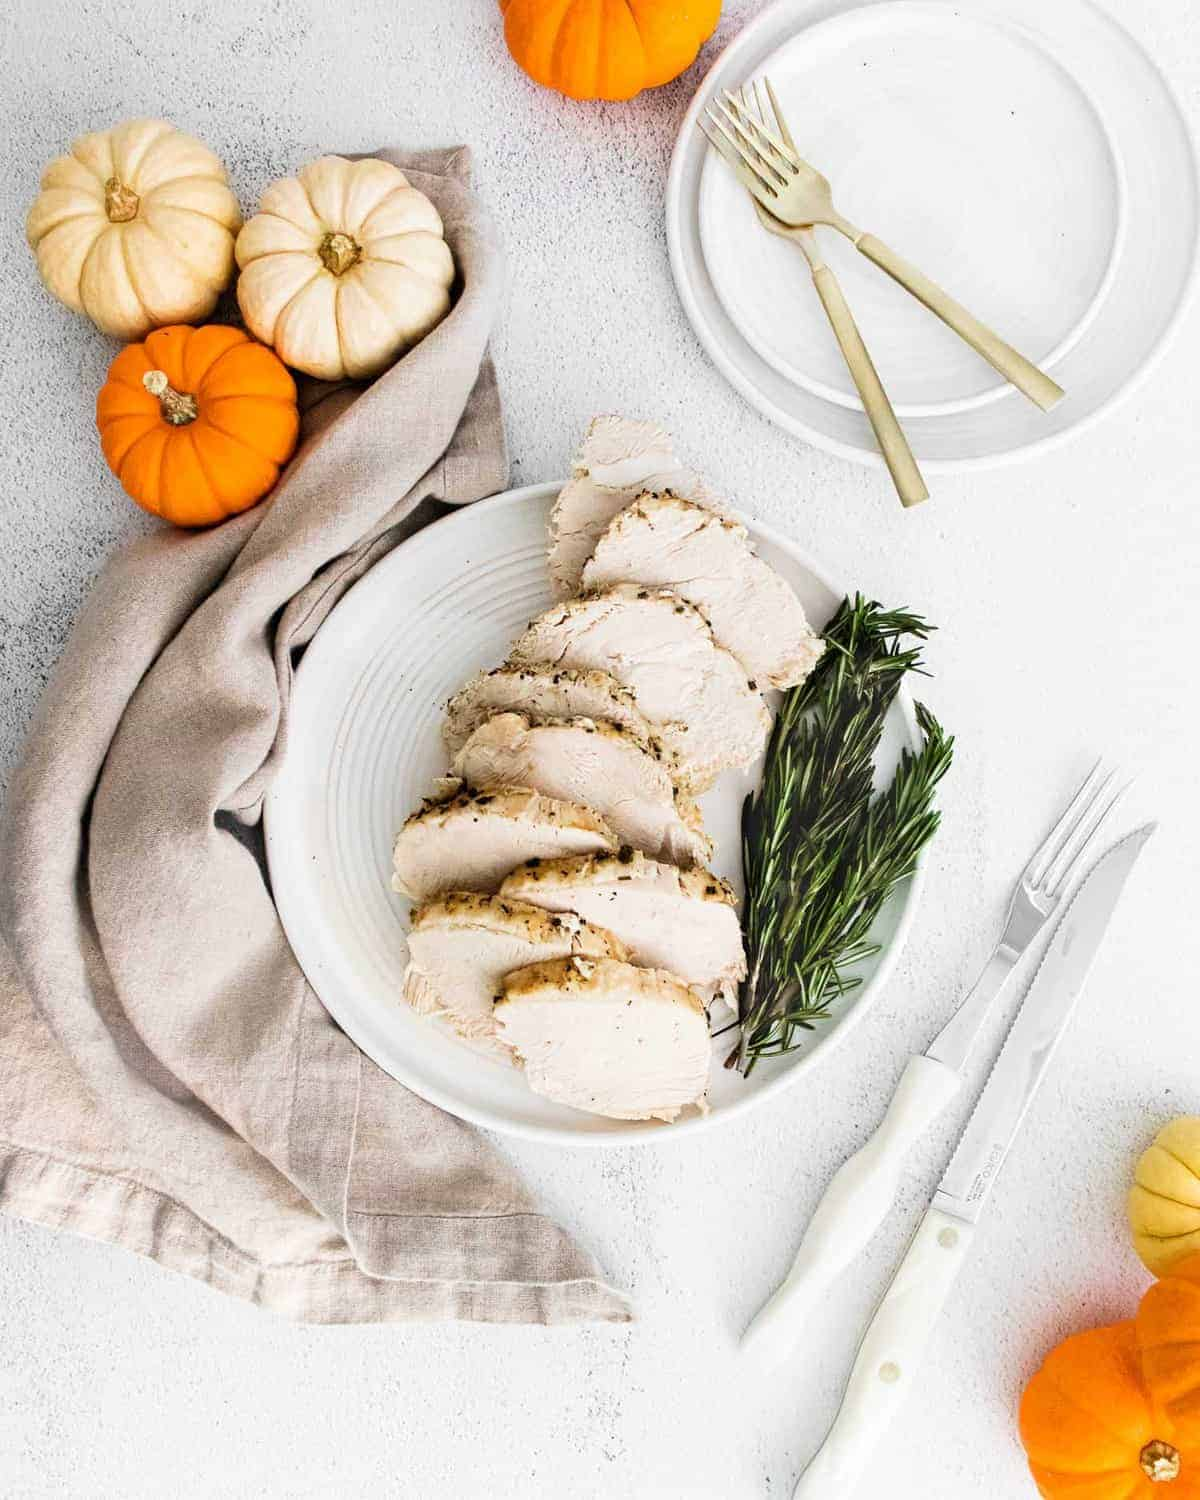 Overhead view of sliced turkey breast with rosemary sprigs and small pumpkins.